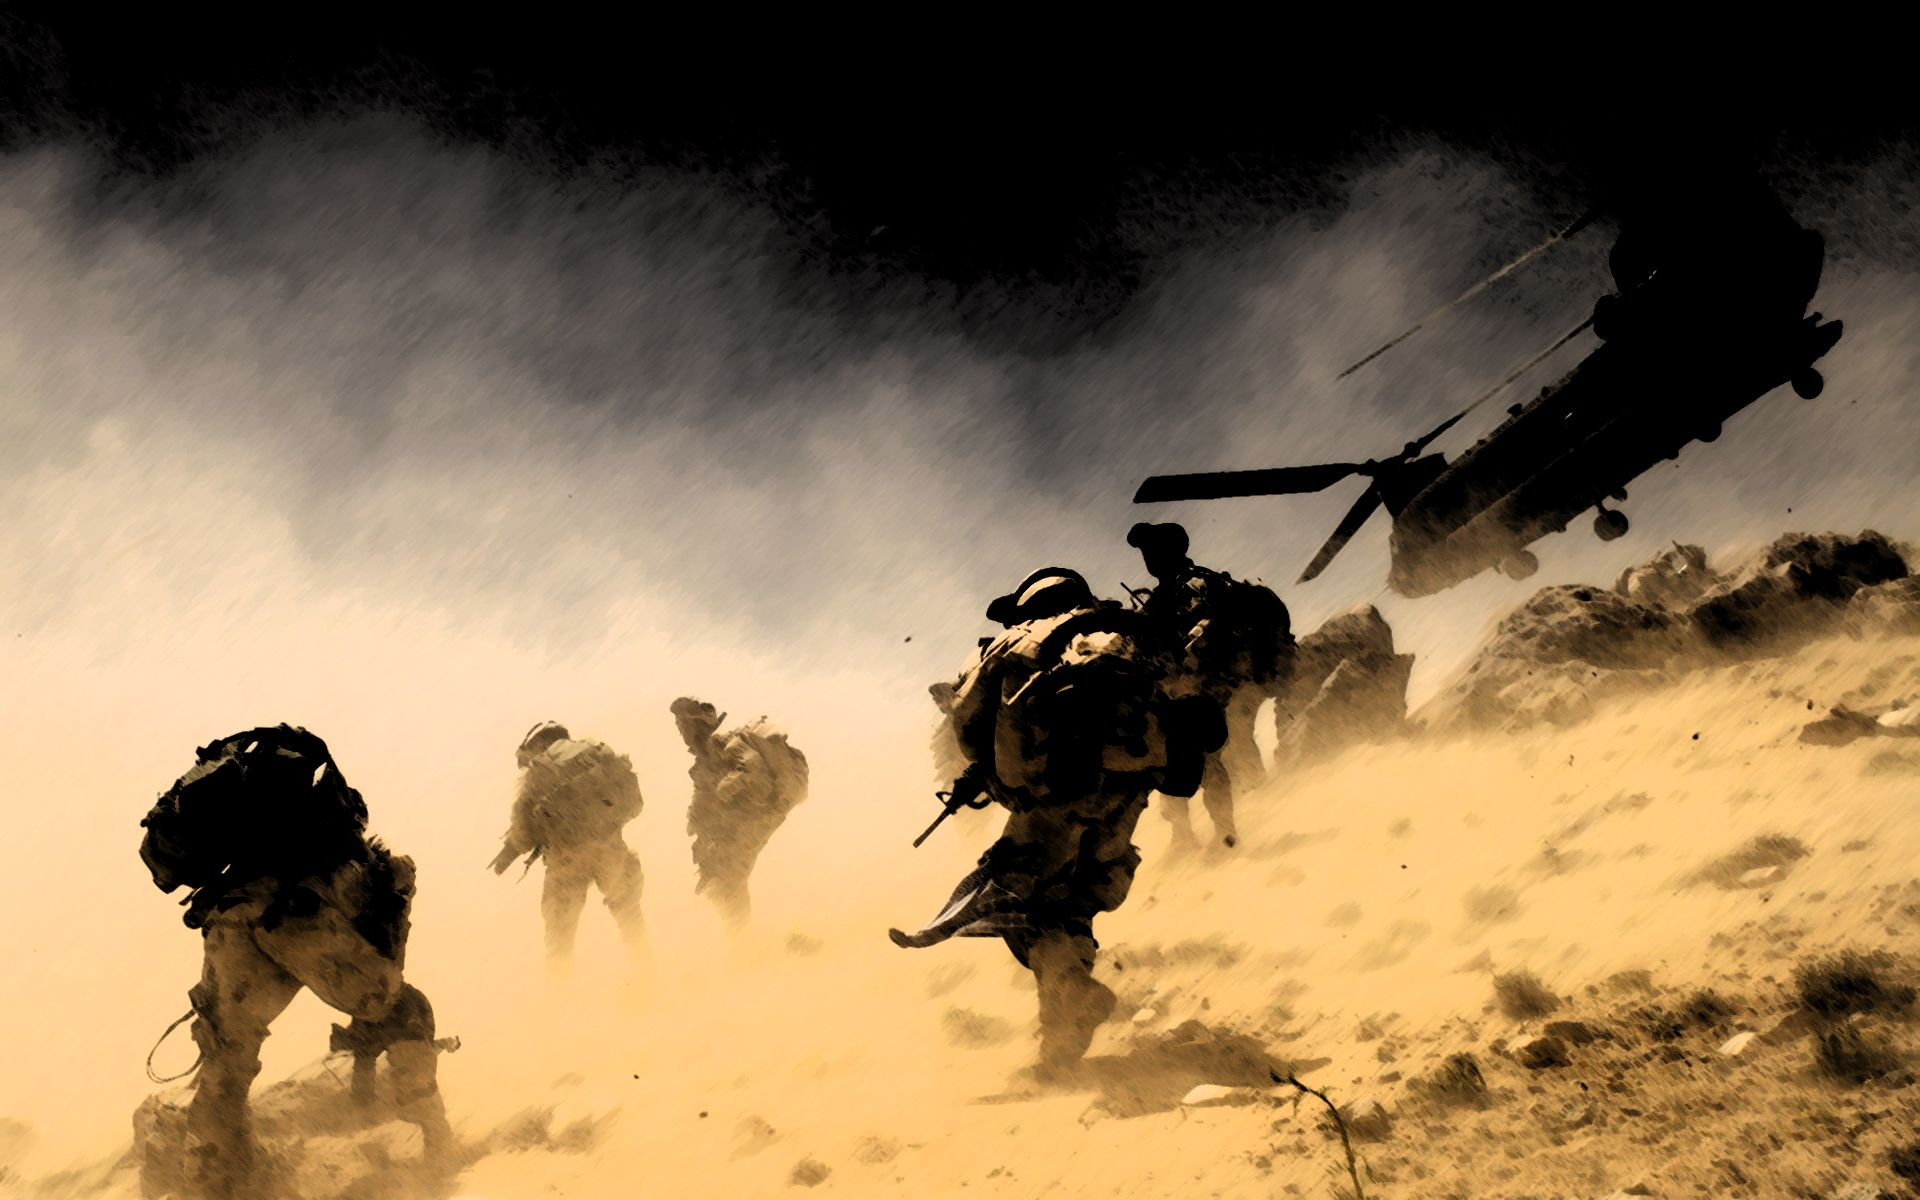 Military Soldiers Operation Wallpaper Free Download Wallpaper From Wallpaperate Com Military Wallpaper Army Wallpaper Military Soldiers